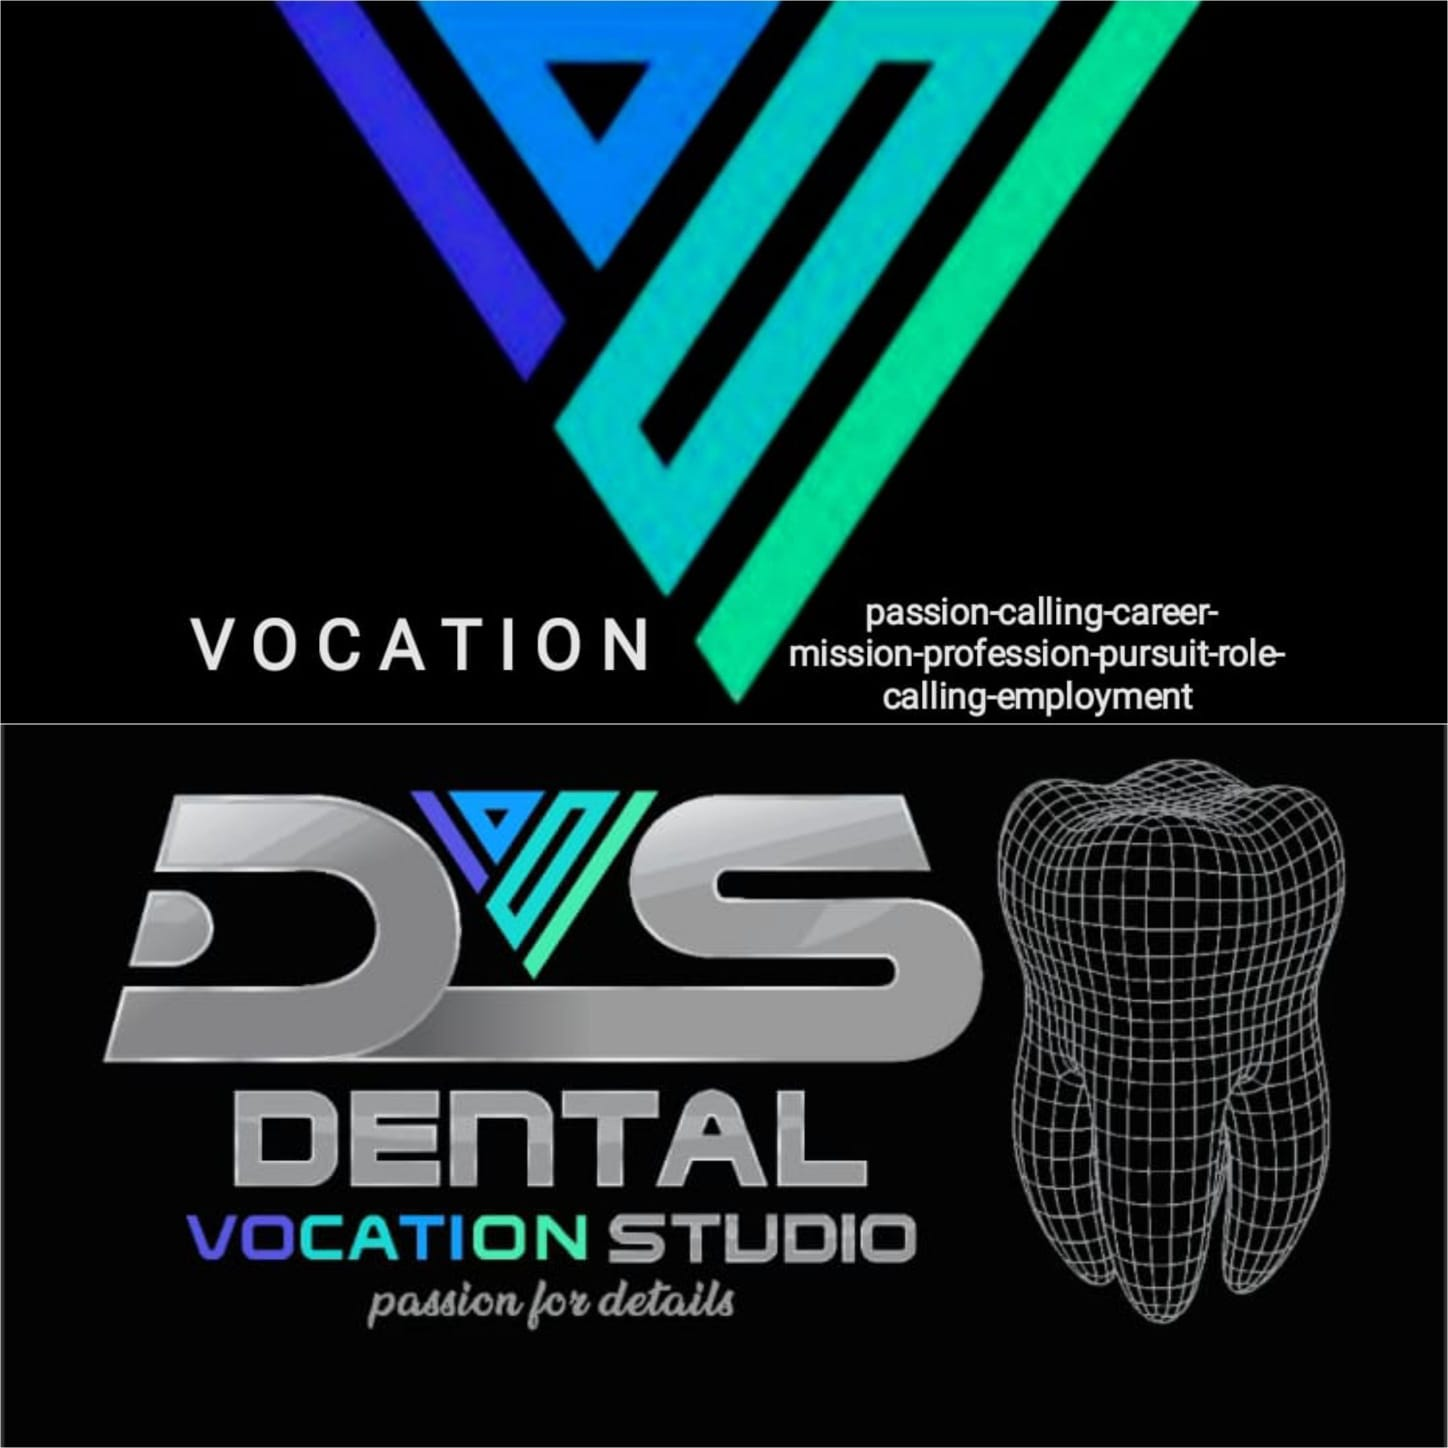 DENTAL VOCATION STUDIO - Caut Dentist Bun